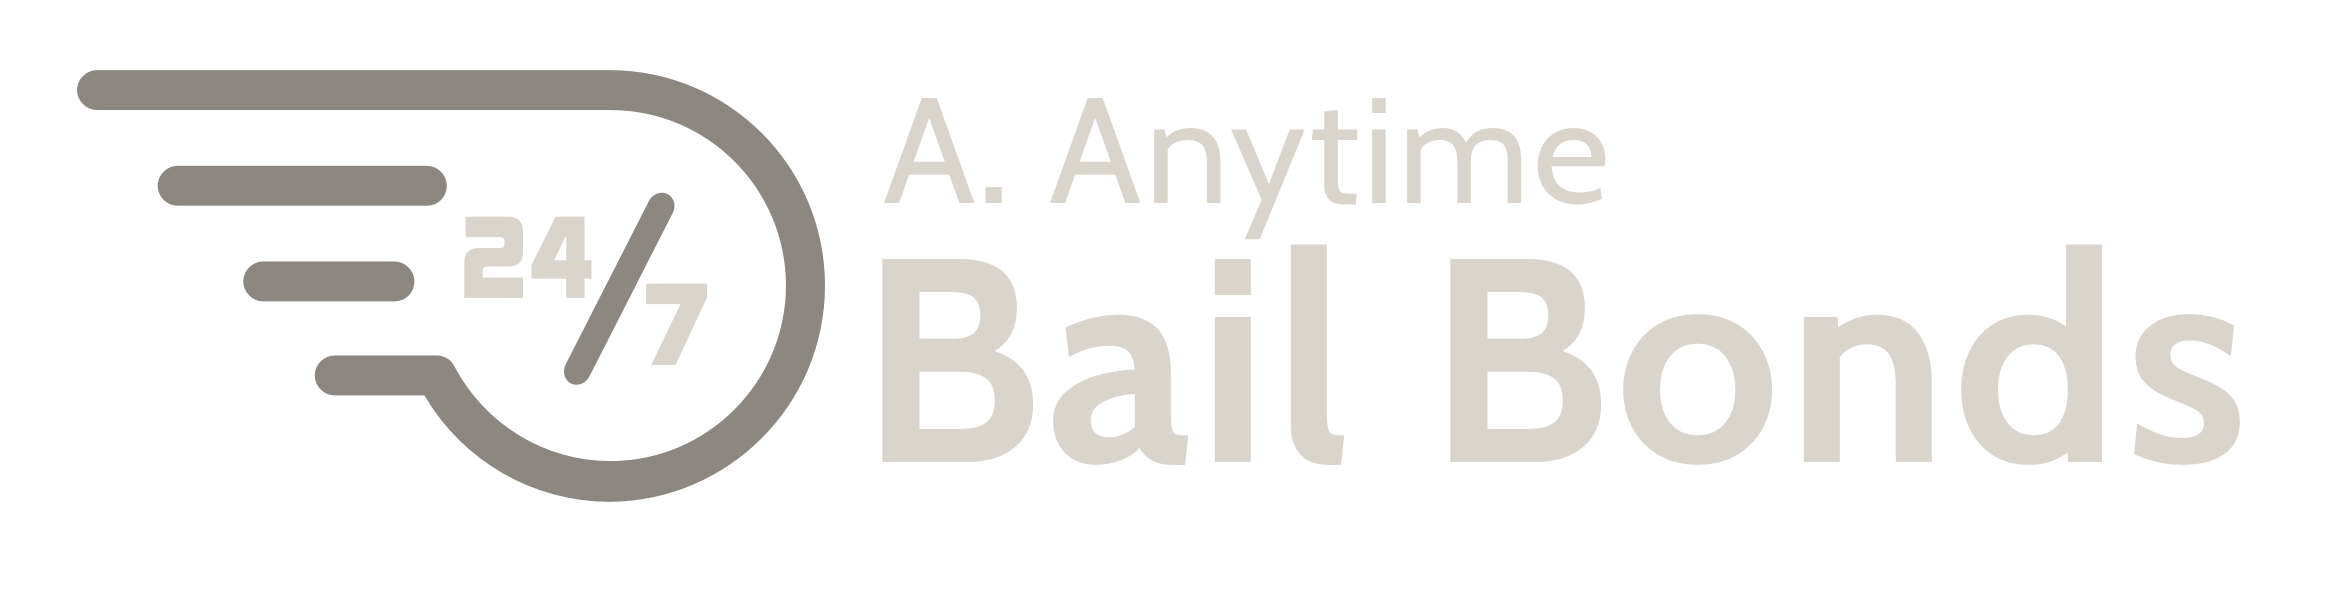 A. Anytime Bail Bonds Logo